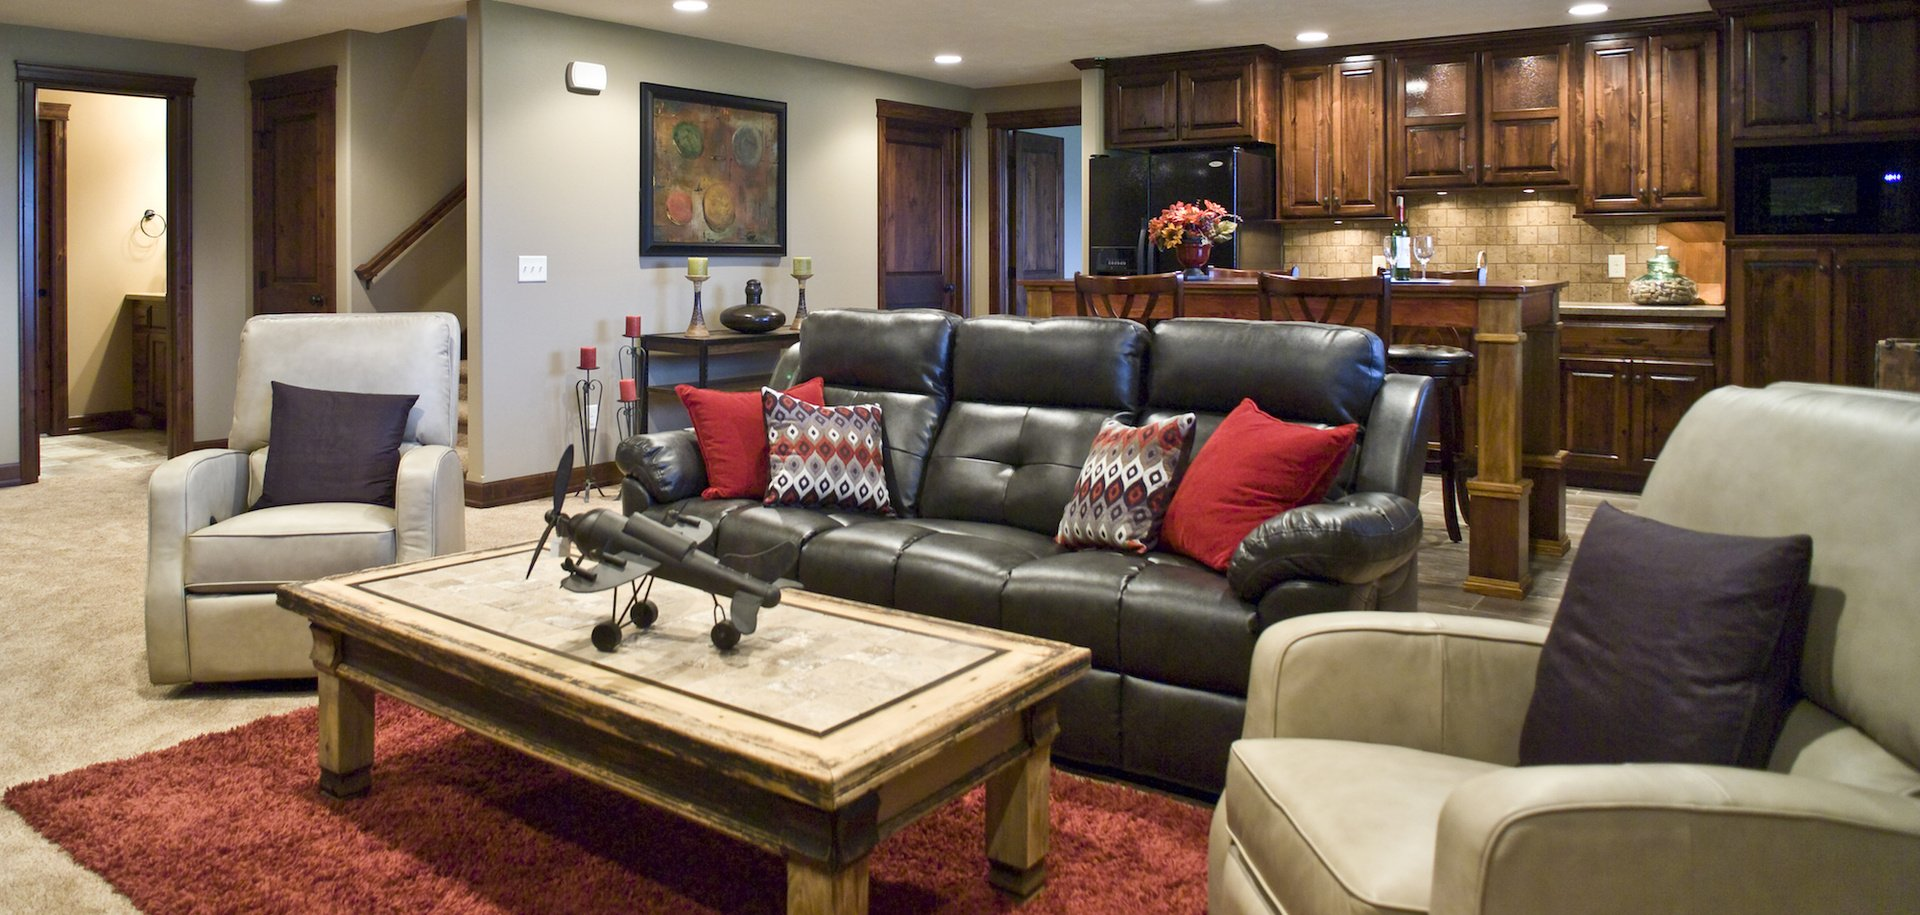 Home remodeling companies in Sioux Falls SD